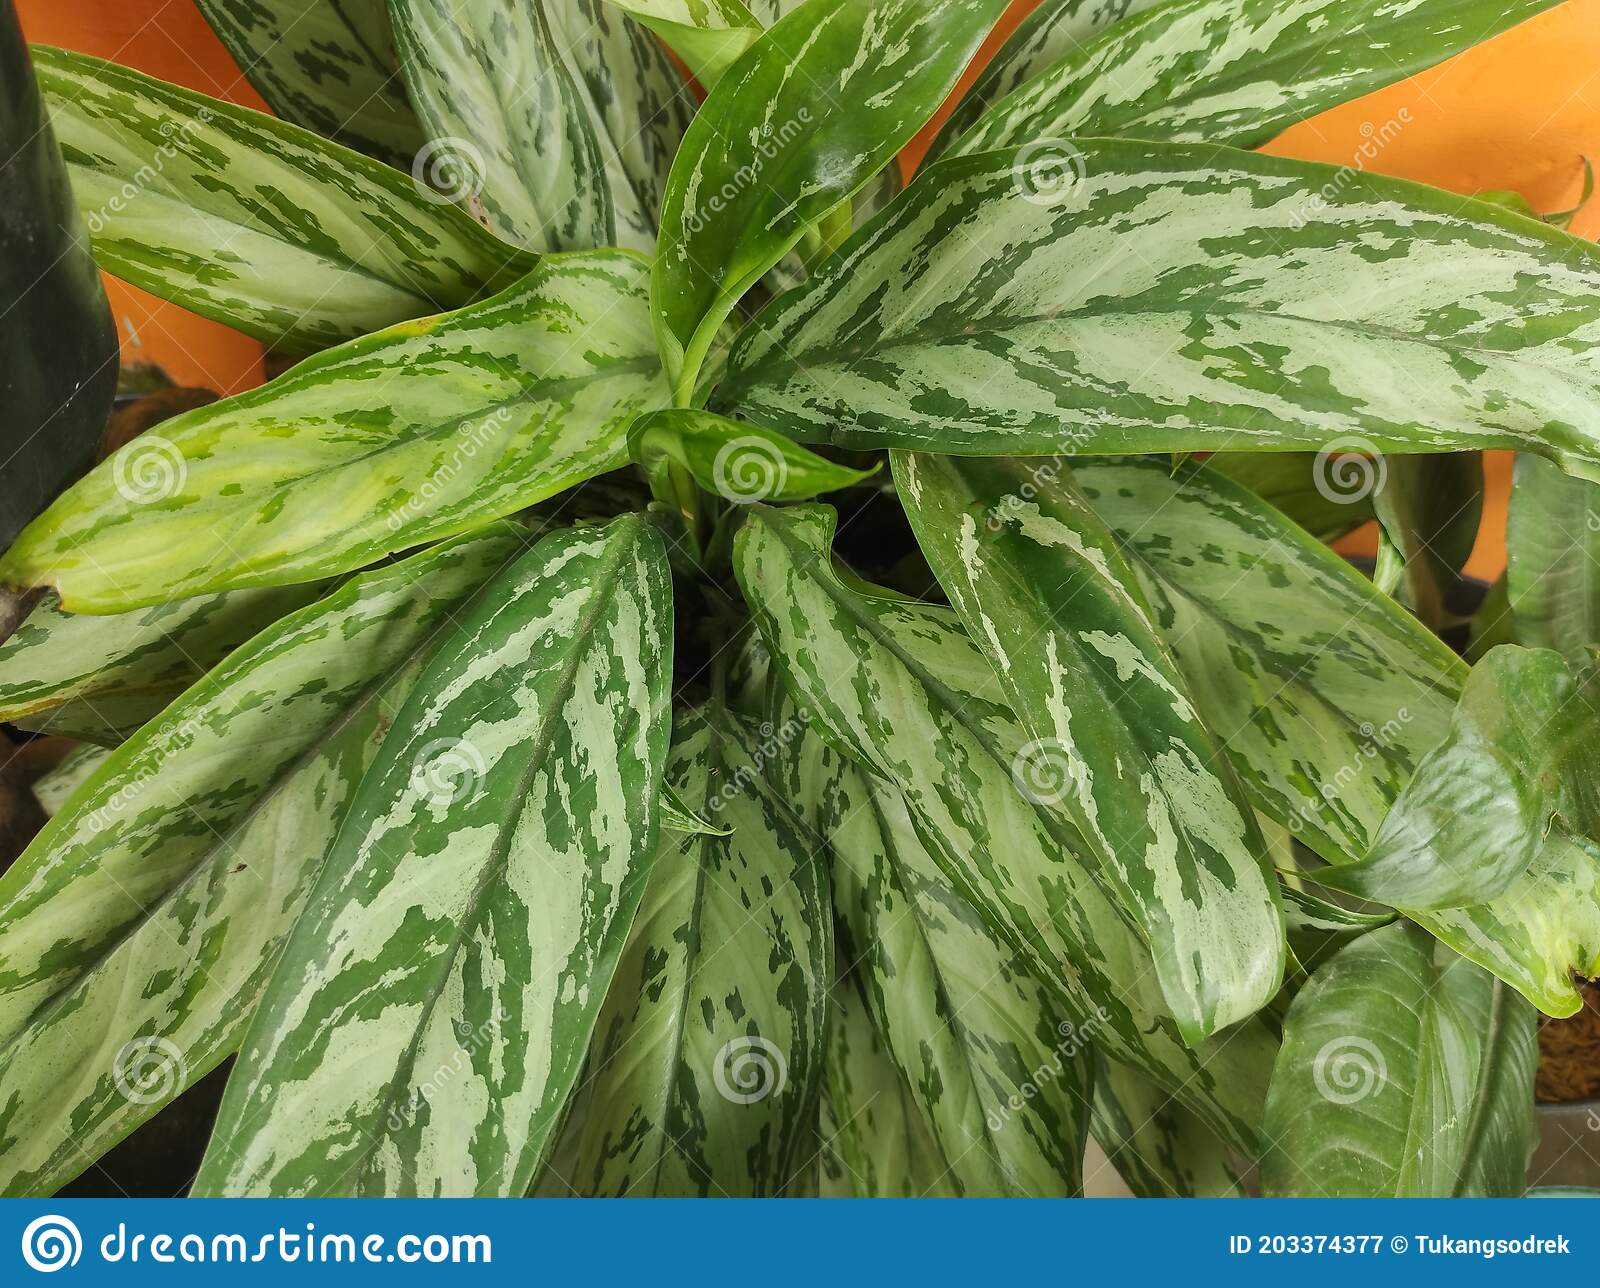 Chinese Evergreen Plants In The Name Of Indonesia Is Bunga Sri Rejeki Stock Image Image Of Indonesia Rejeki 203374377 Gambar bunga sri rejeki